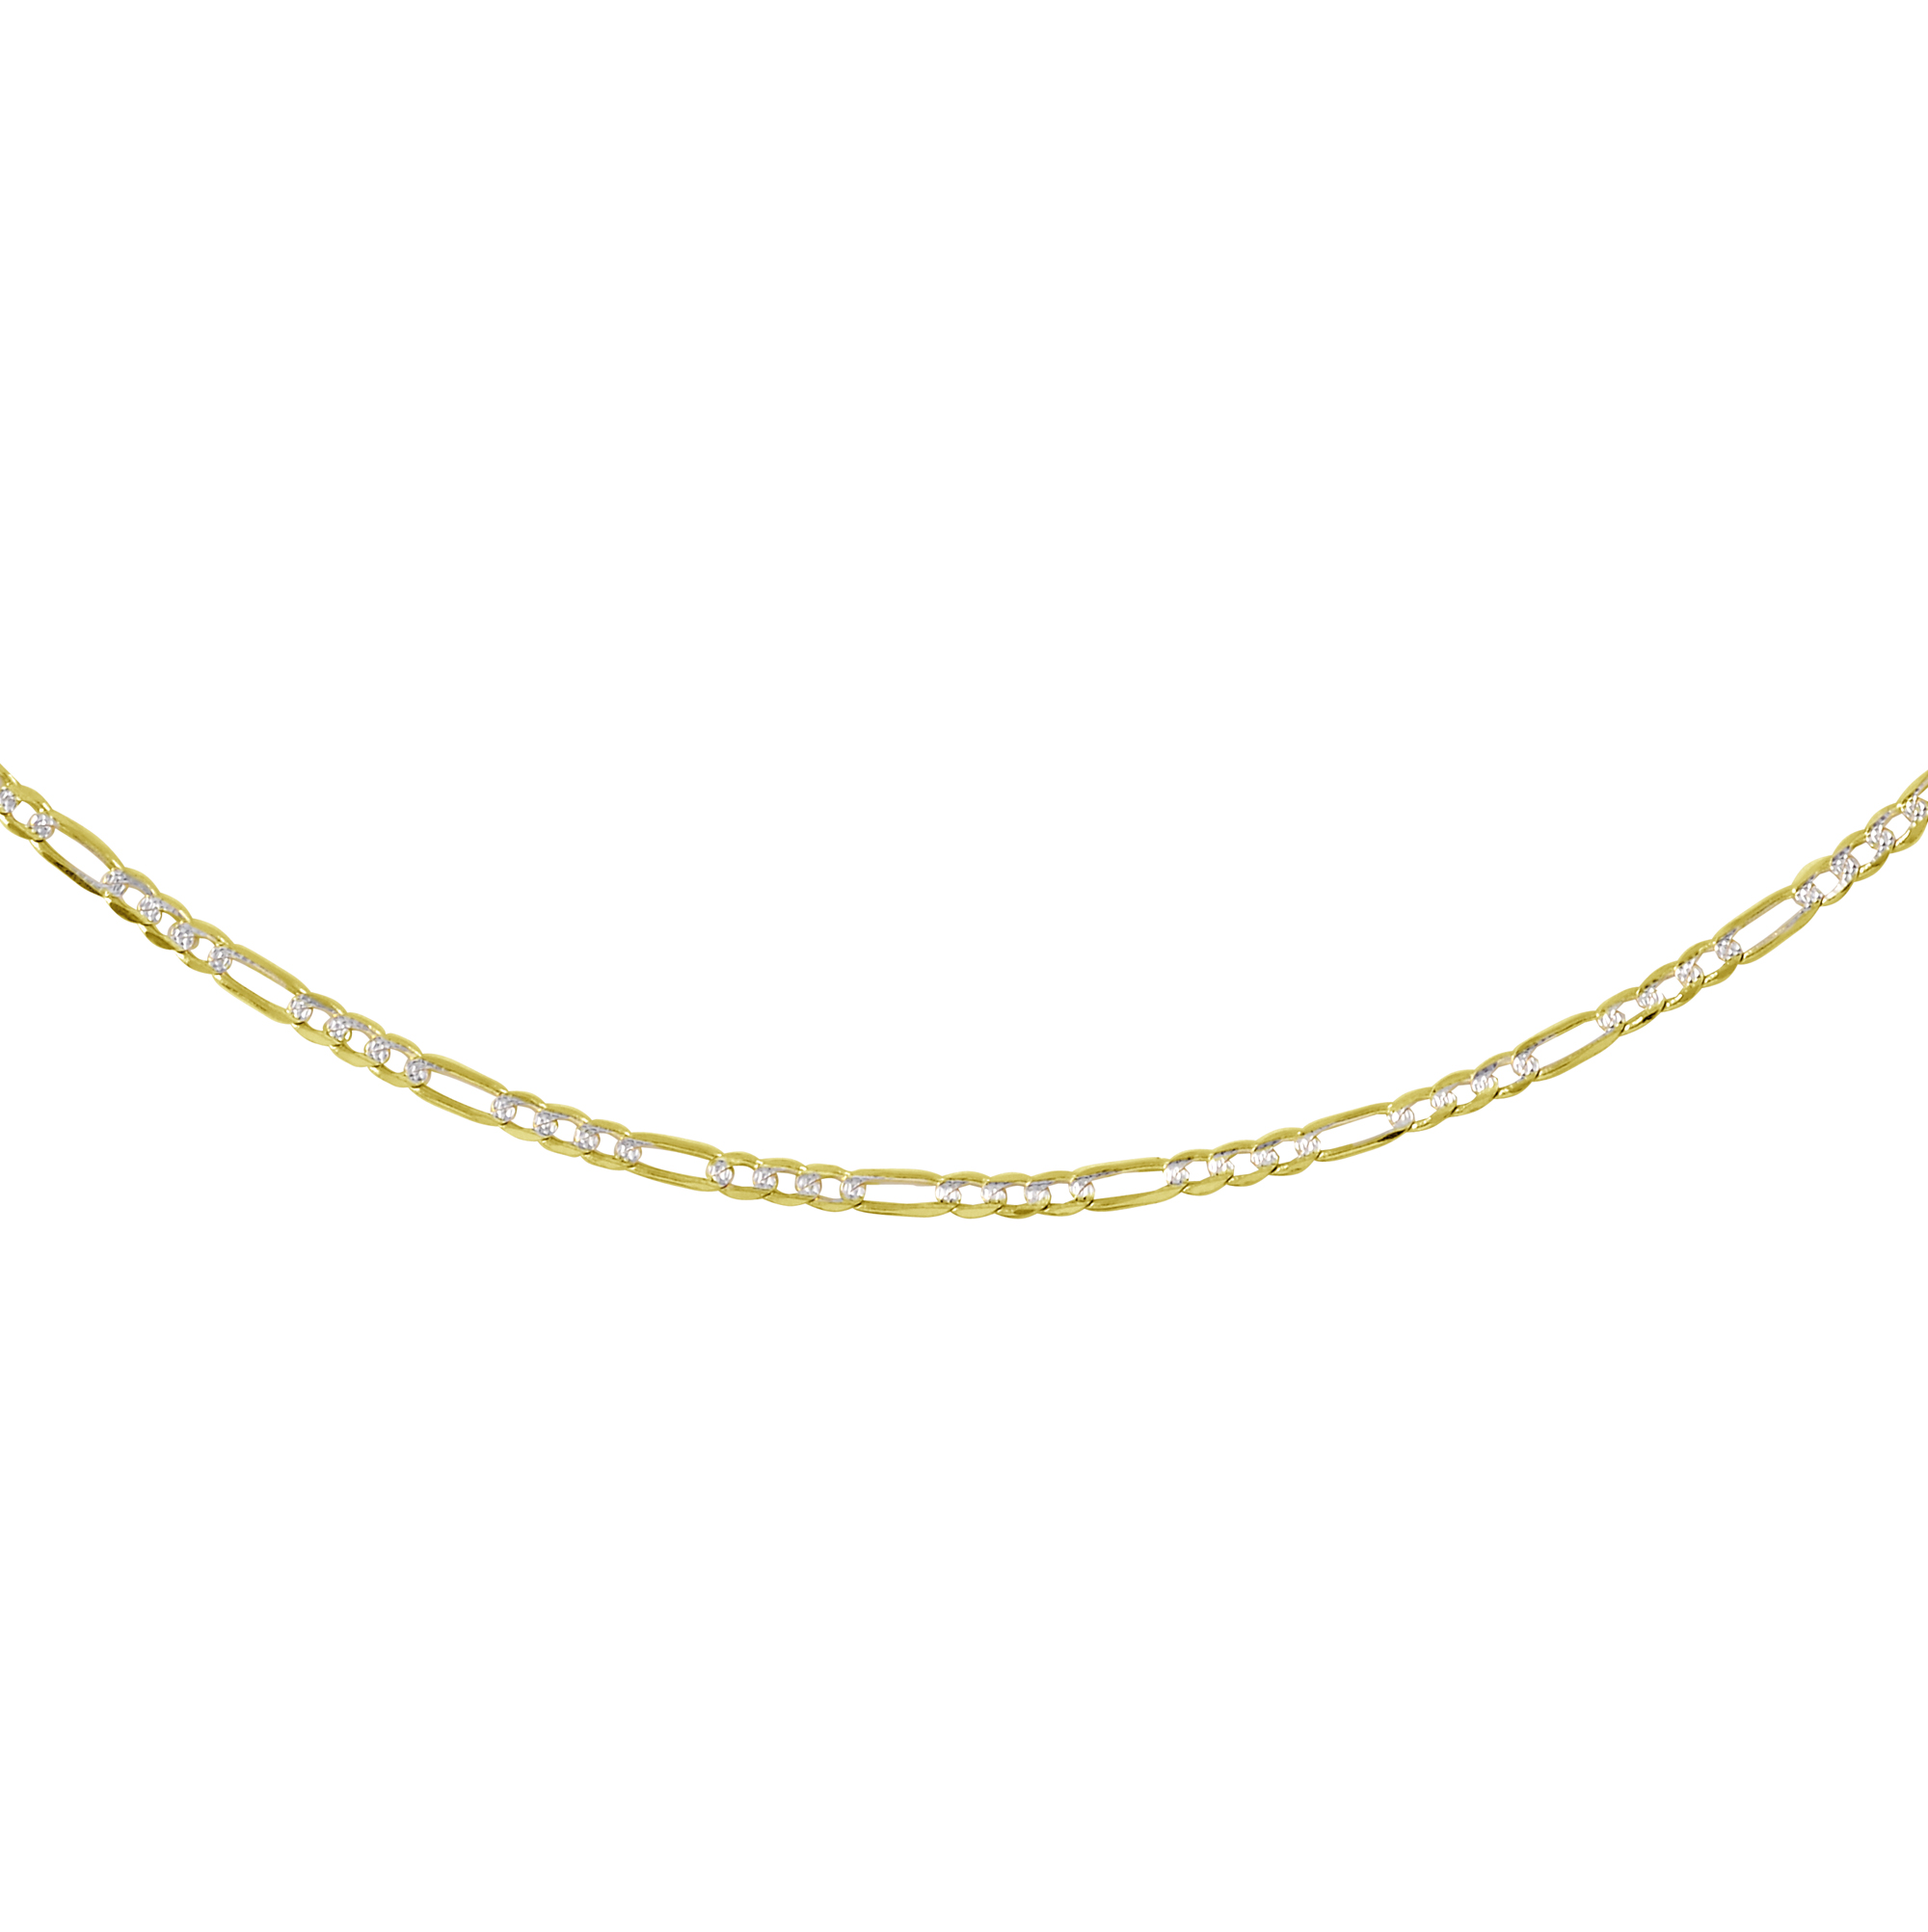 7'' Figaro bracelet - 10K 2-tone Gold (yellow and white)